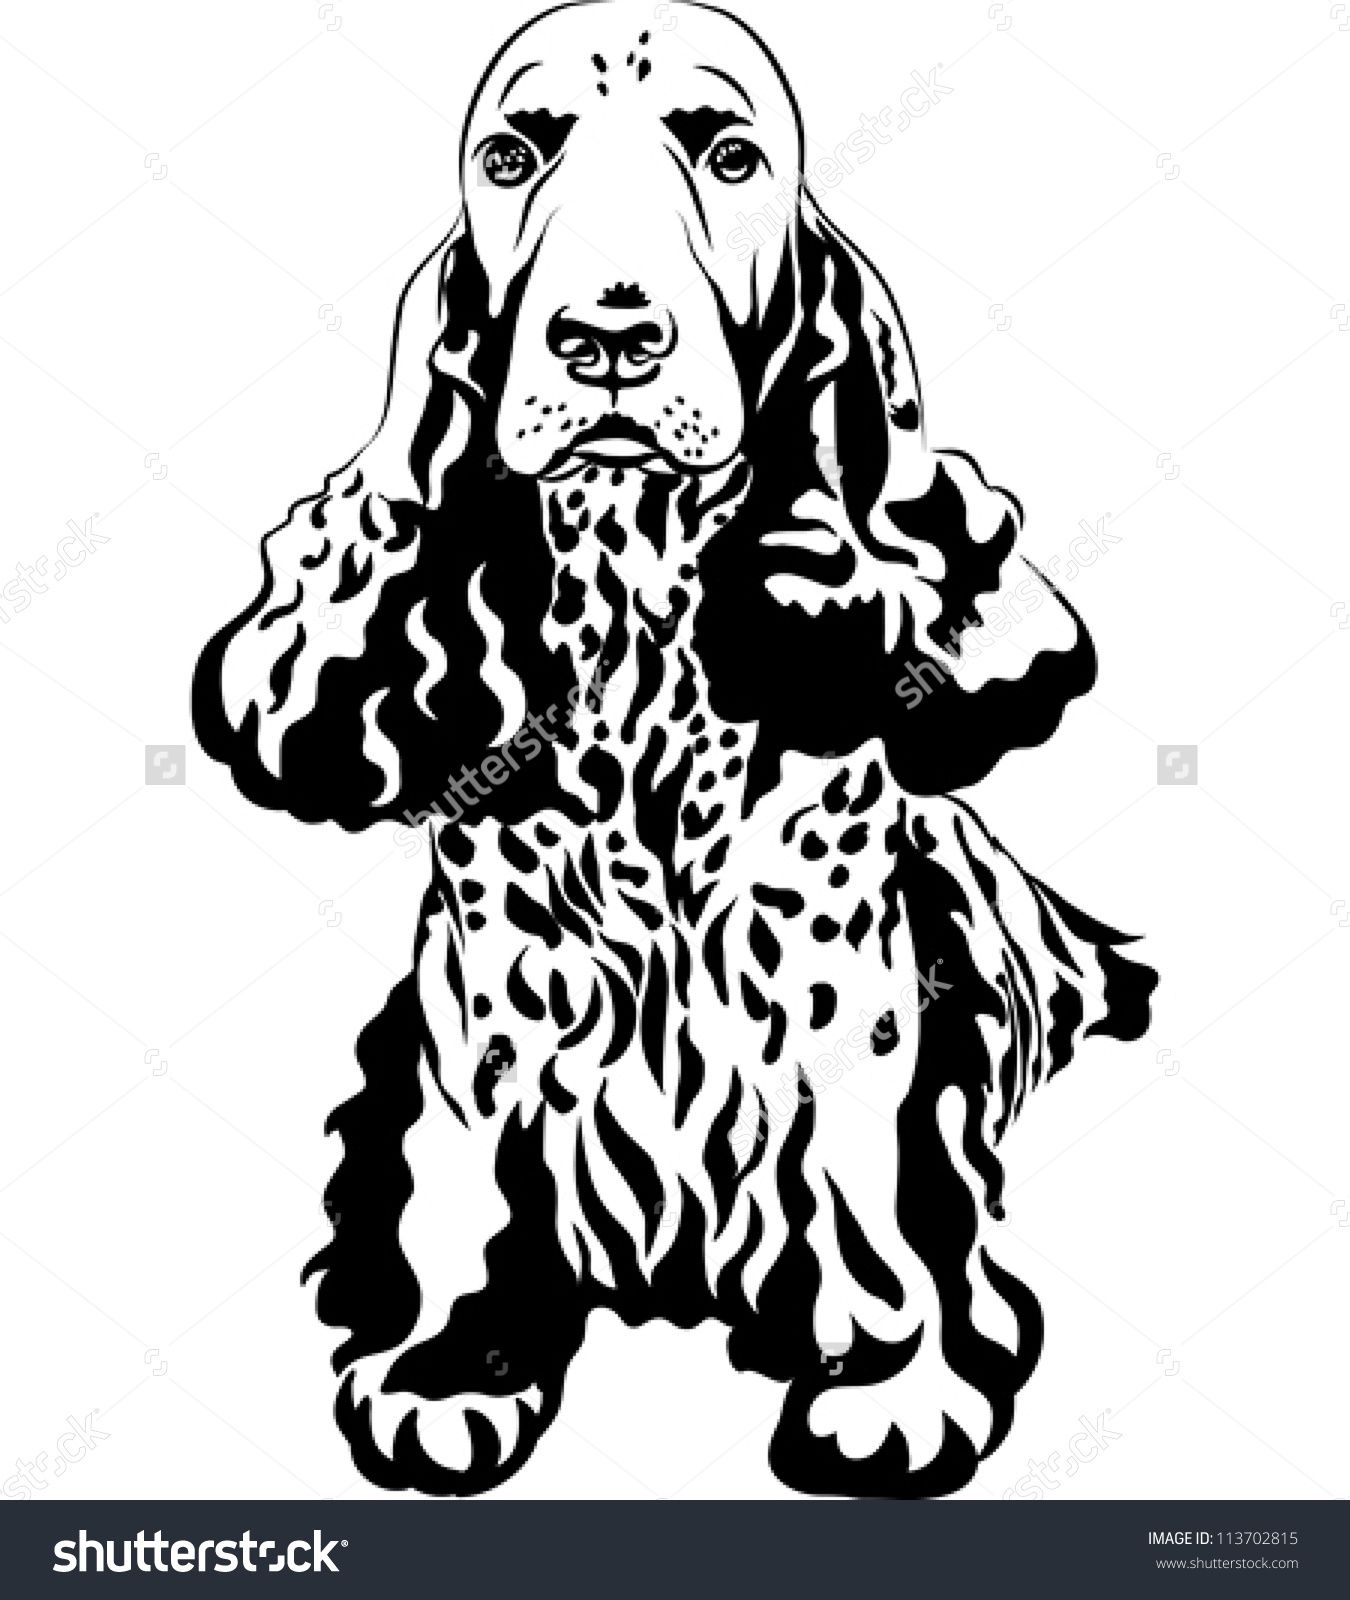 stock-vector-vector-black-and-white-sketch-funny-dog-breed-english-cocker-spaniel-sitting-113702815.jpg (1350×1600)